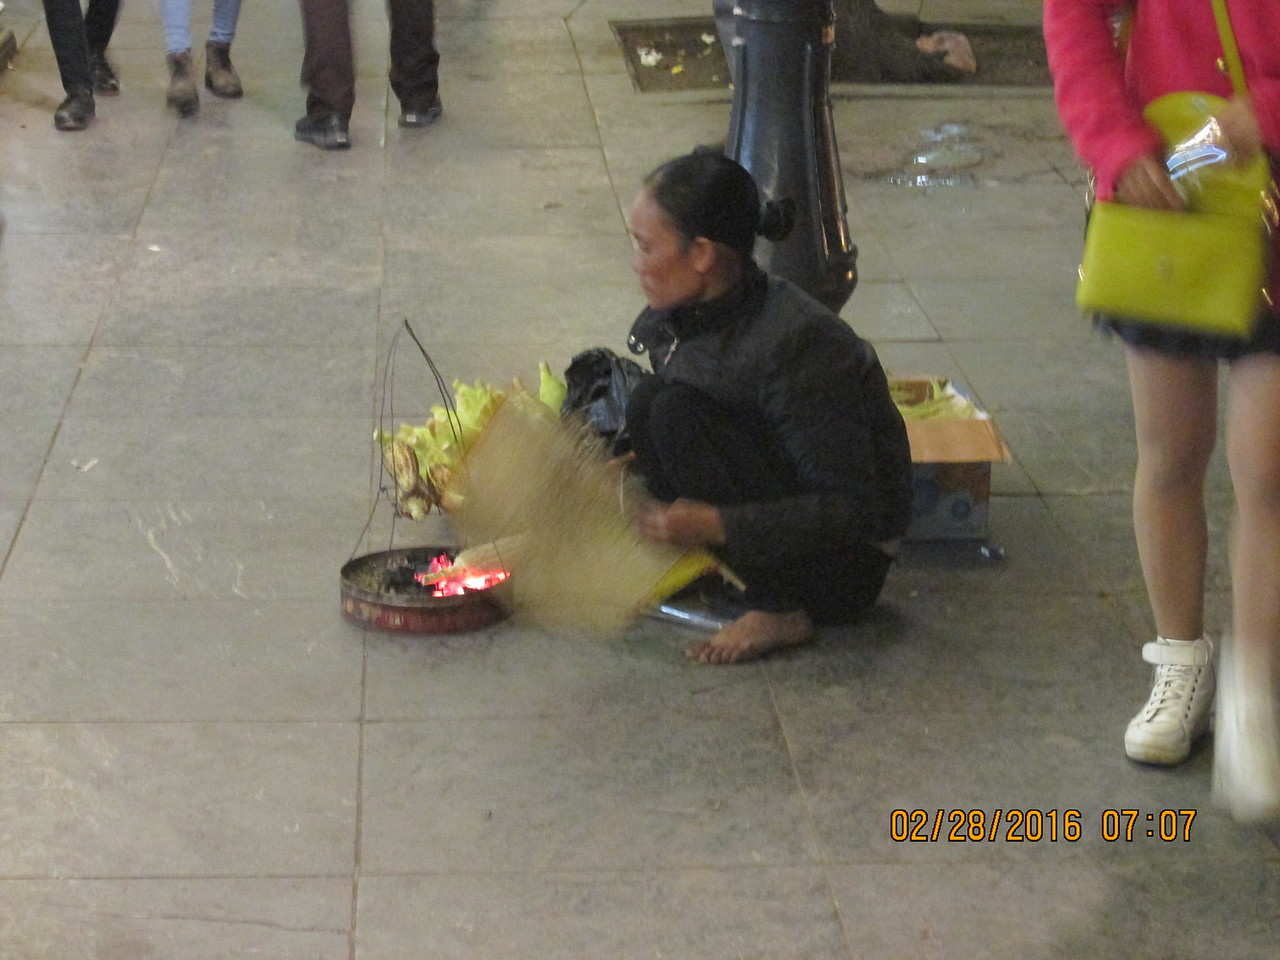 0089 - Woman Grills Corn along Hoan Kiem Lake in the Old Quarter - Hanoi Vietnam - Date Correct but Time on Pic is Wrong